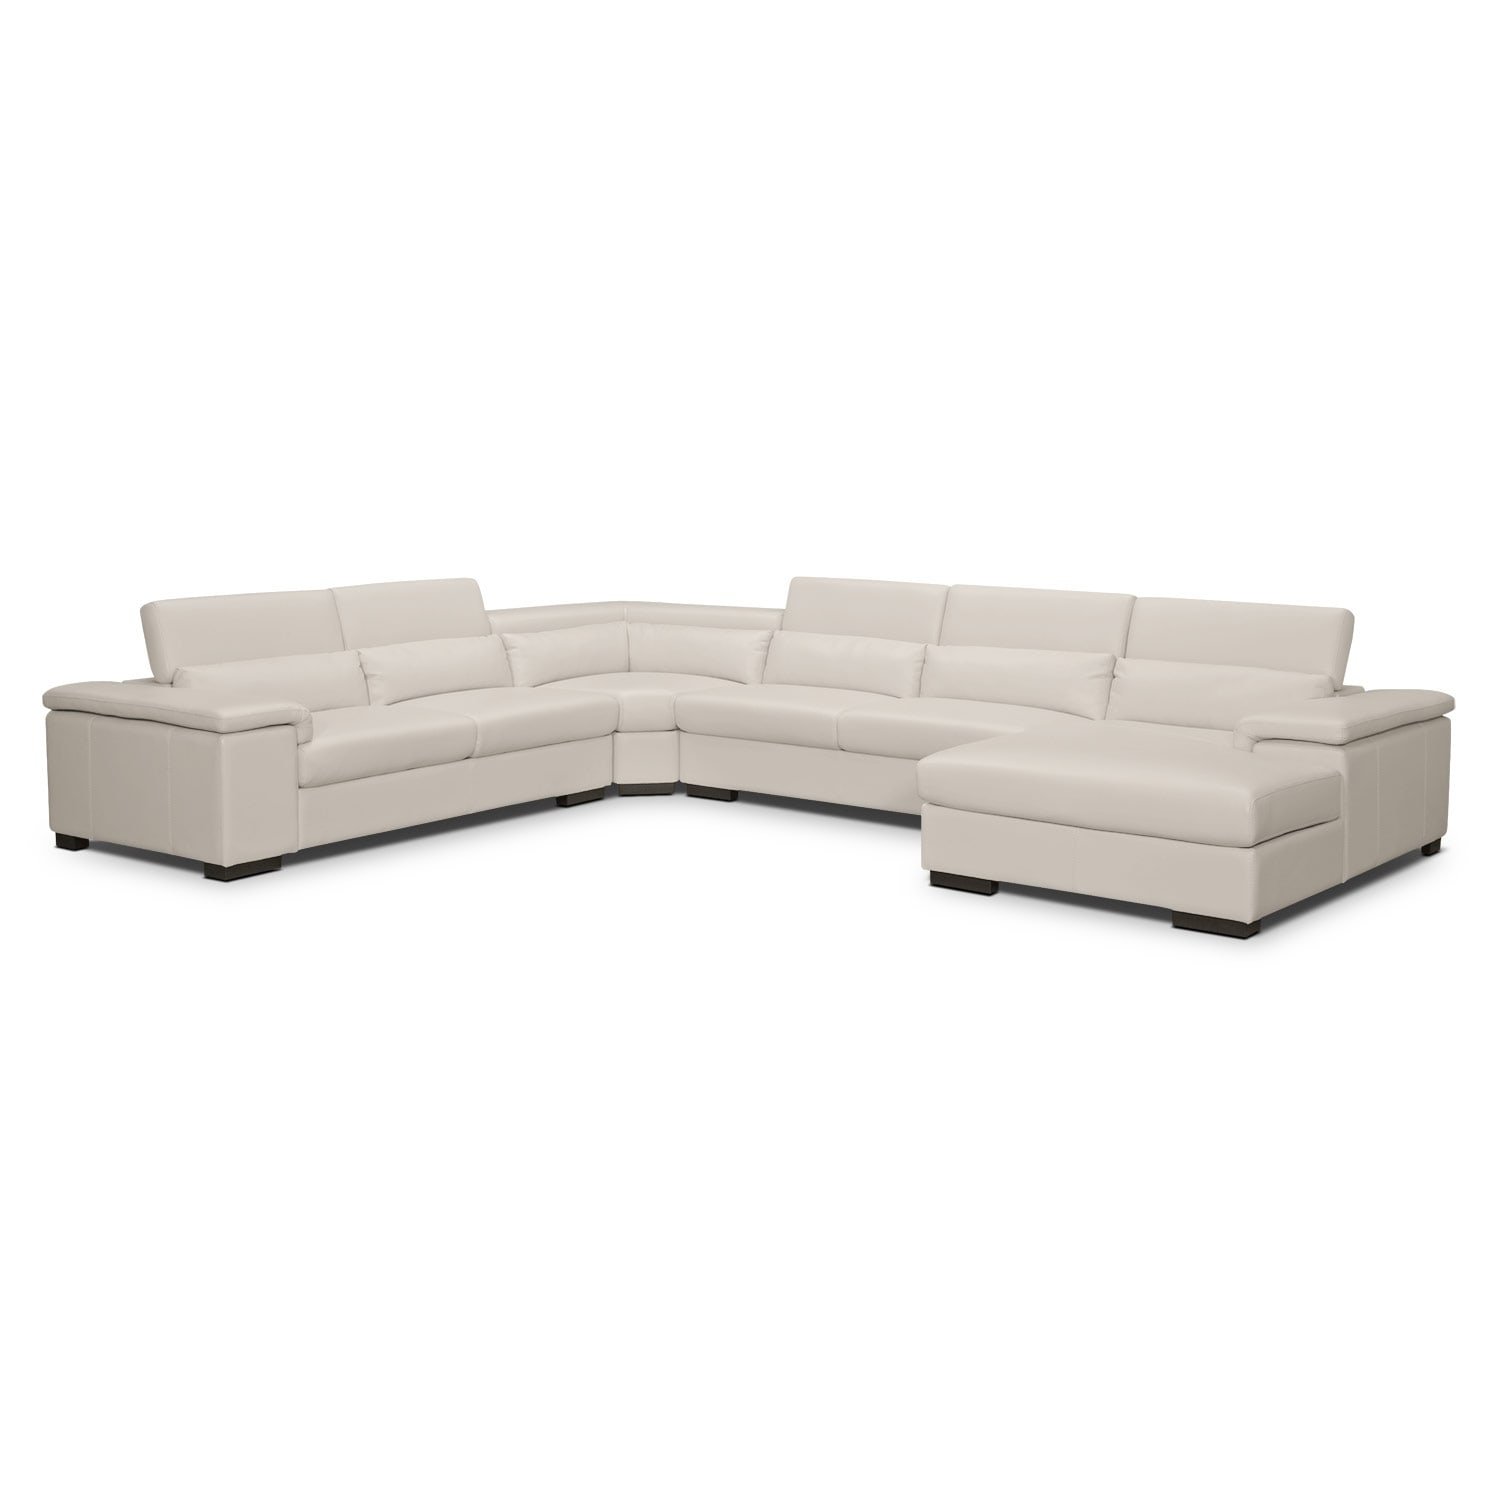 Living Room Furniture - Ventana 4 Pc. Sectional